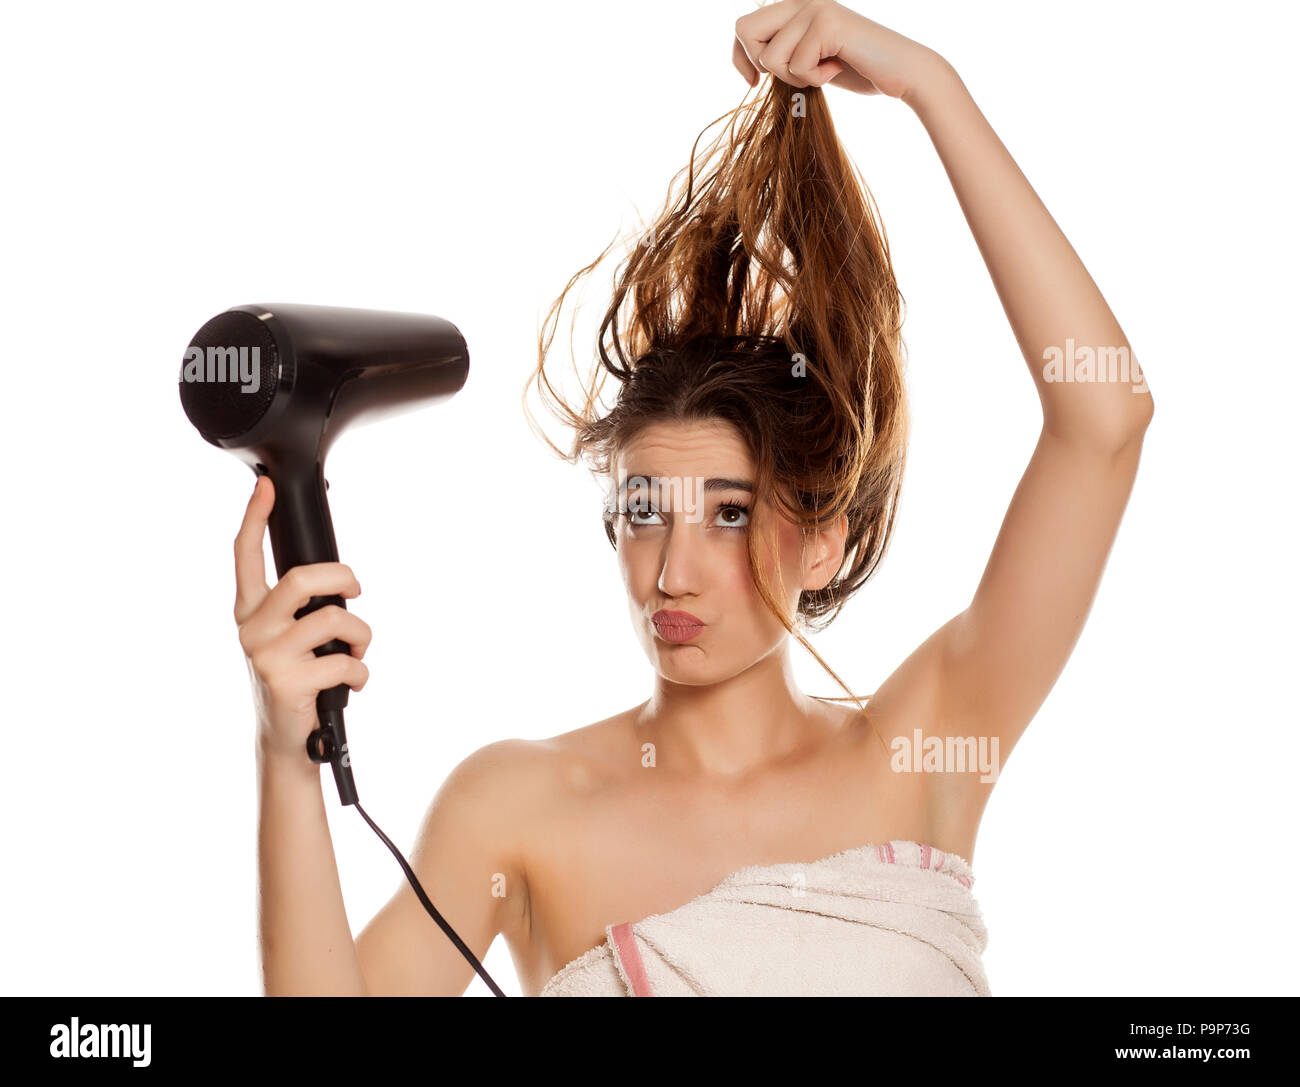 young beautiful woman drying her hair with a blow dryer on a white  background - Stock 17d6d82e7